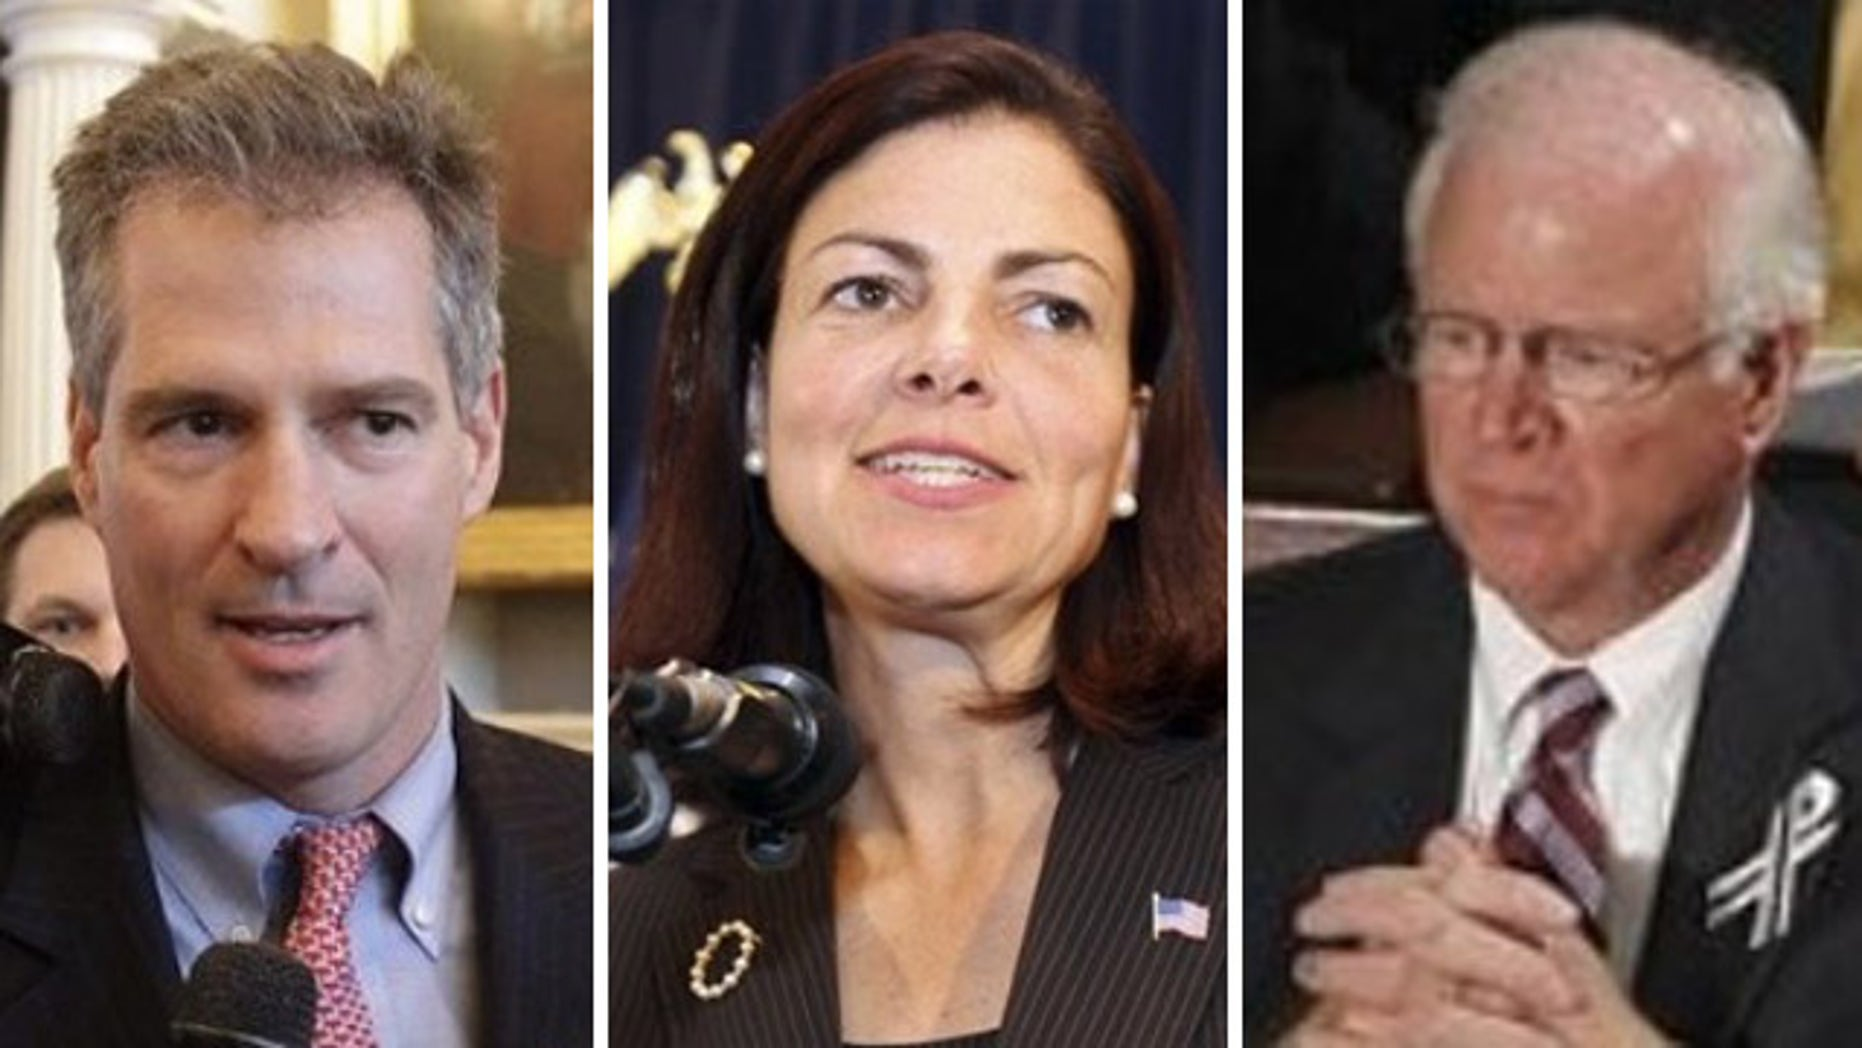 Shown here are Sens. Scott Brown, R-Mass., Kelly Ayotte, R-N.H., and Saxby Chambliss, R-Ga.